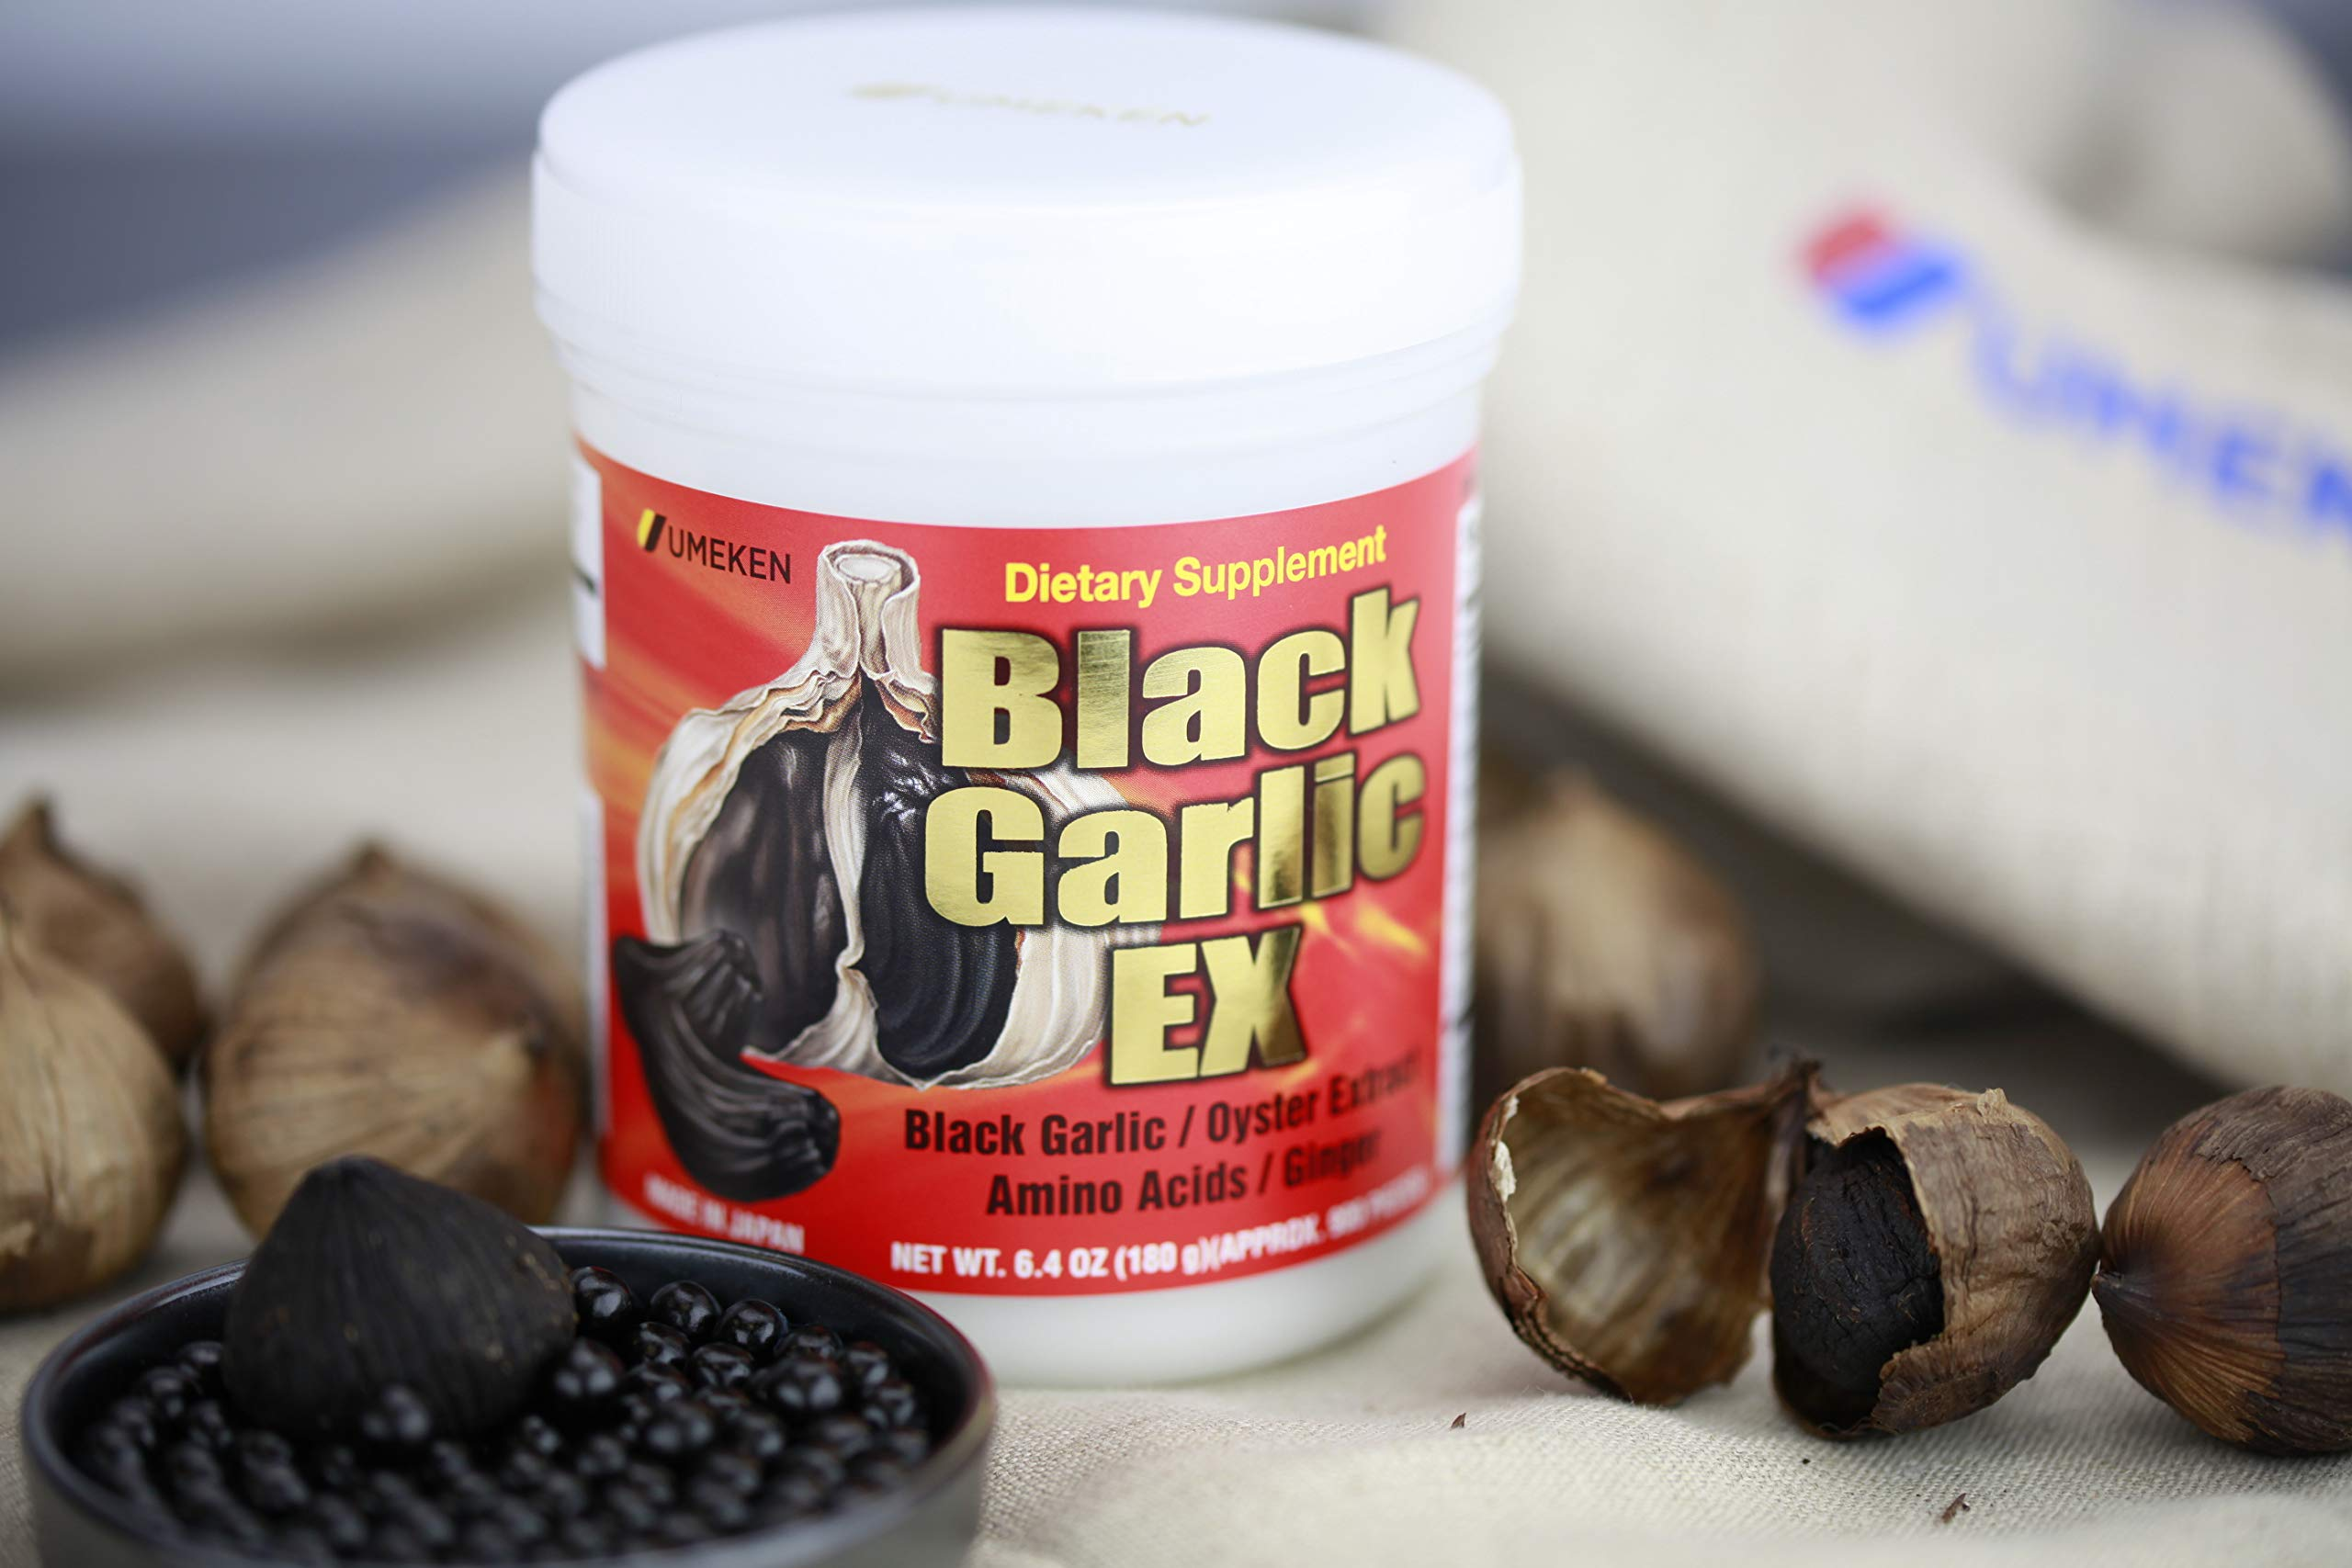 Umeken Black Garlic EX - Fermented Black Concentrated Garlic Extract - Rich in Vitamin B1, Allicin, Amino Acids. About 3 Month Supply. Made in Japan. by Umeken (Image #4)